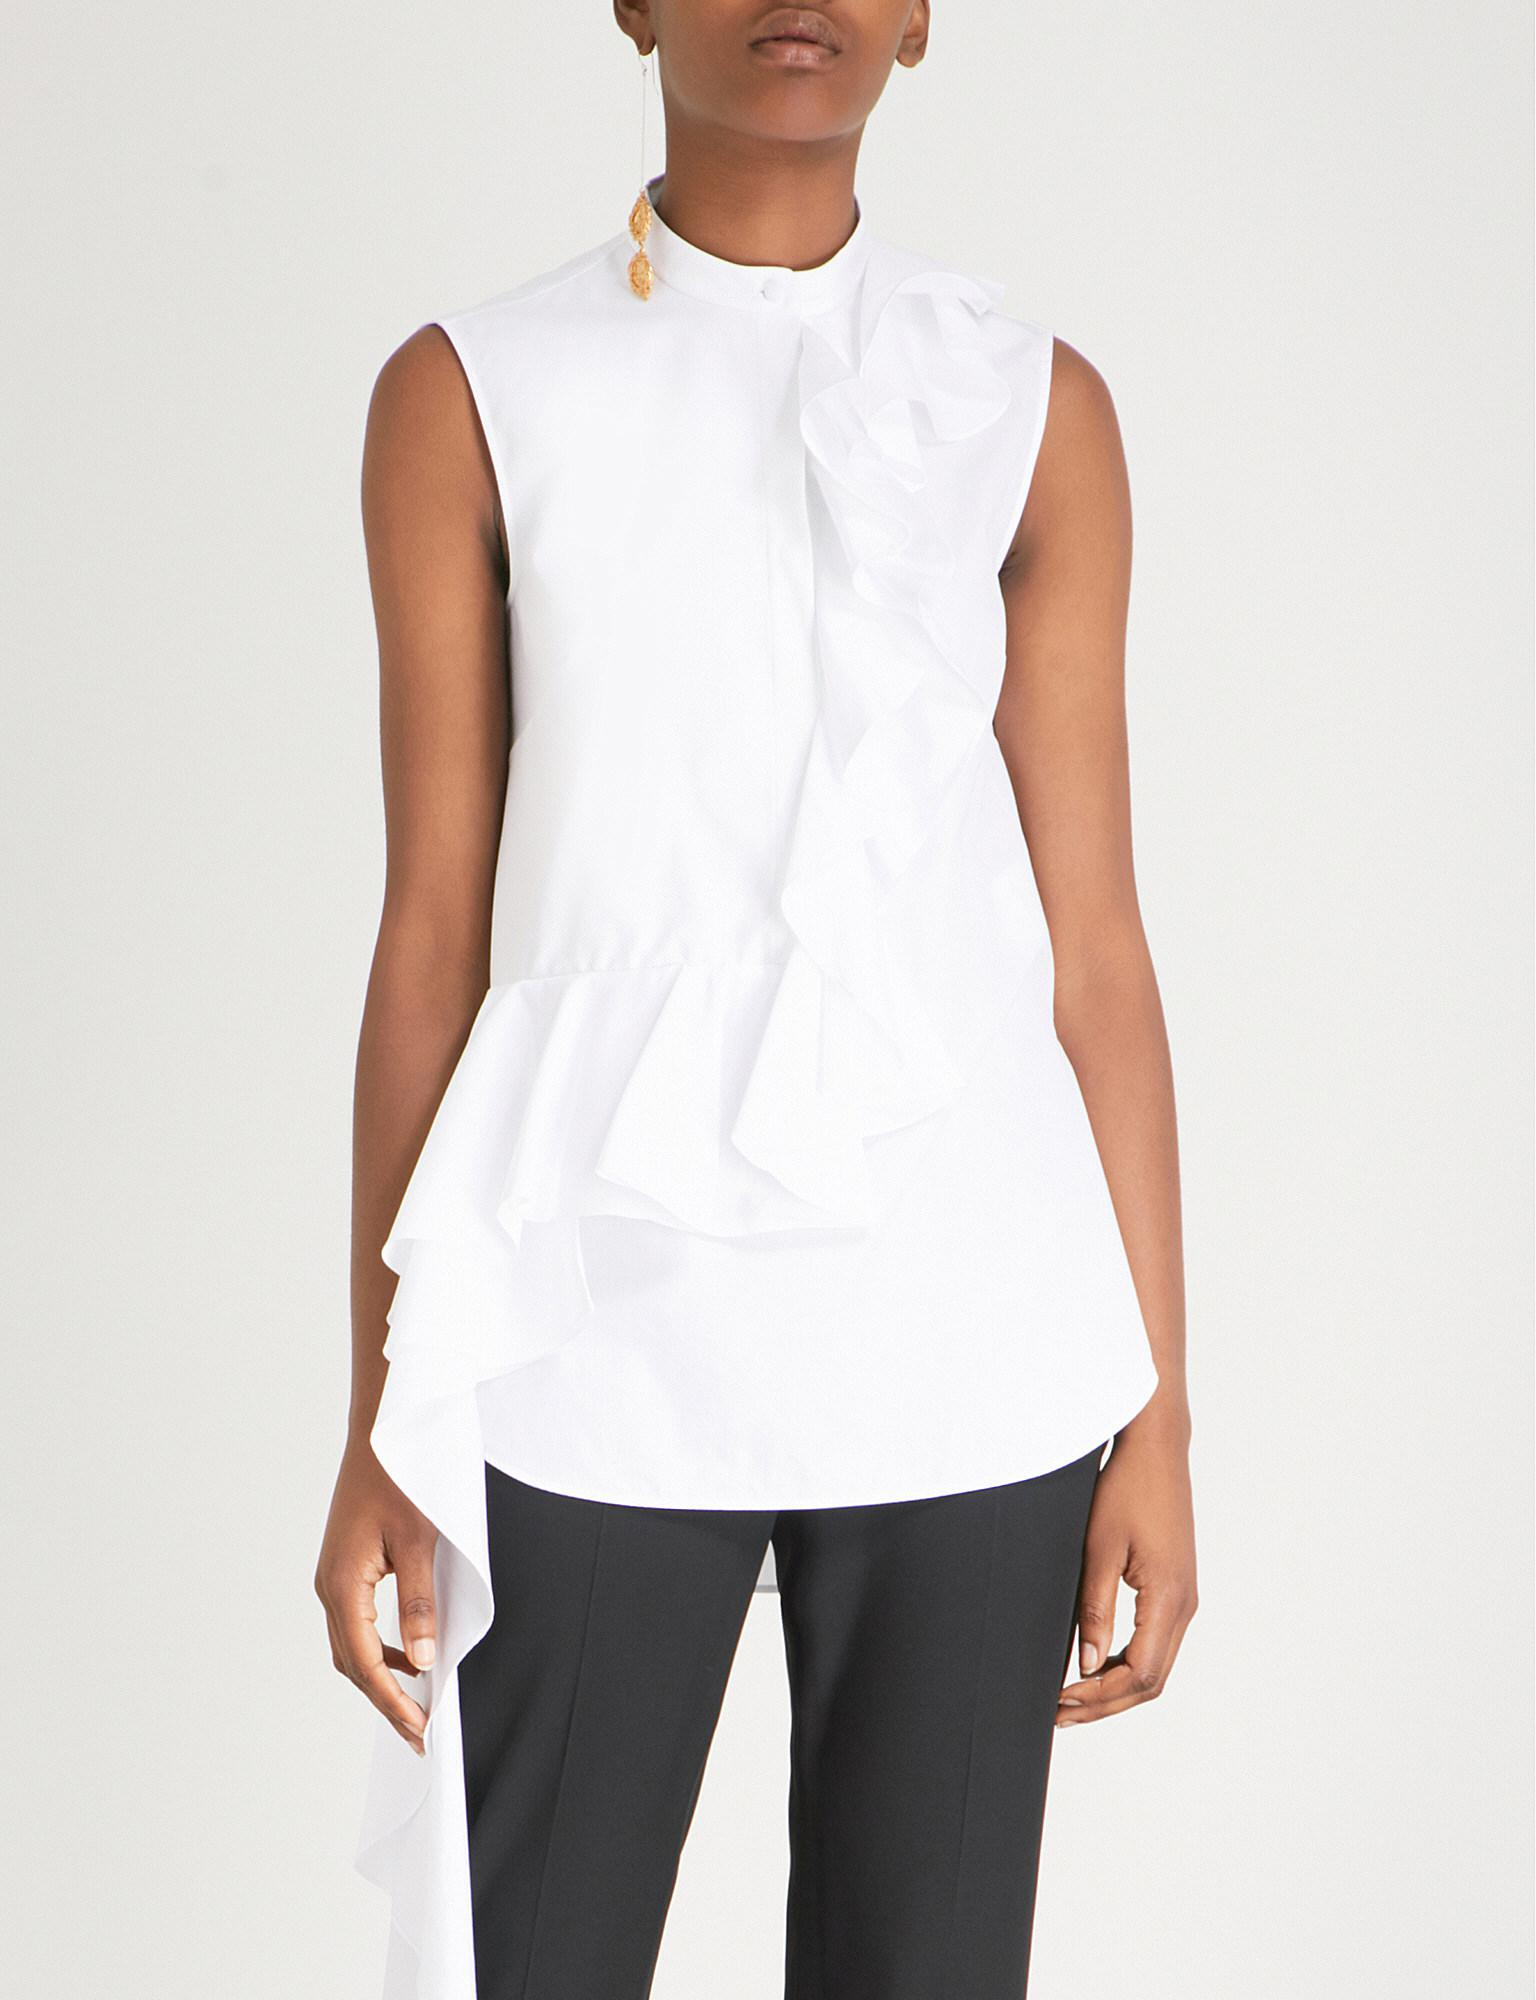 Popular Sale Online Ruffle-trimmed Cotton-poplin Shirt - White Alexander McQueen Cheap Great Deals jwSMRX